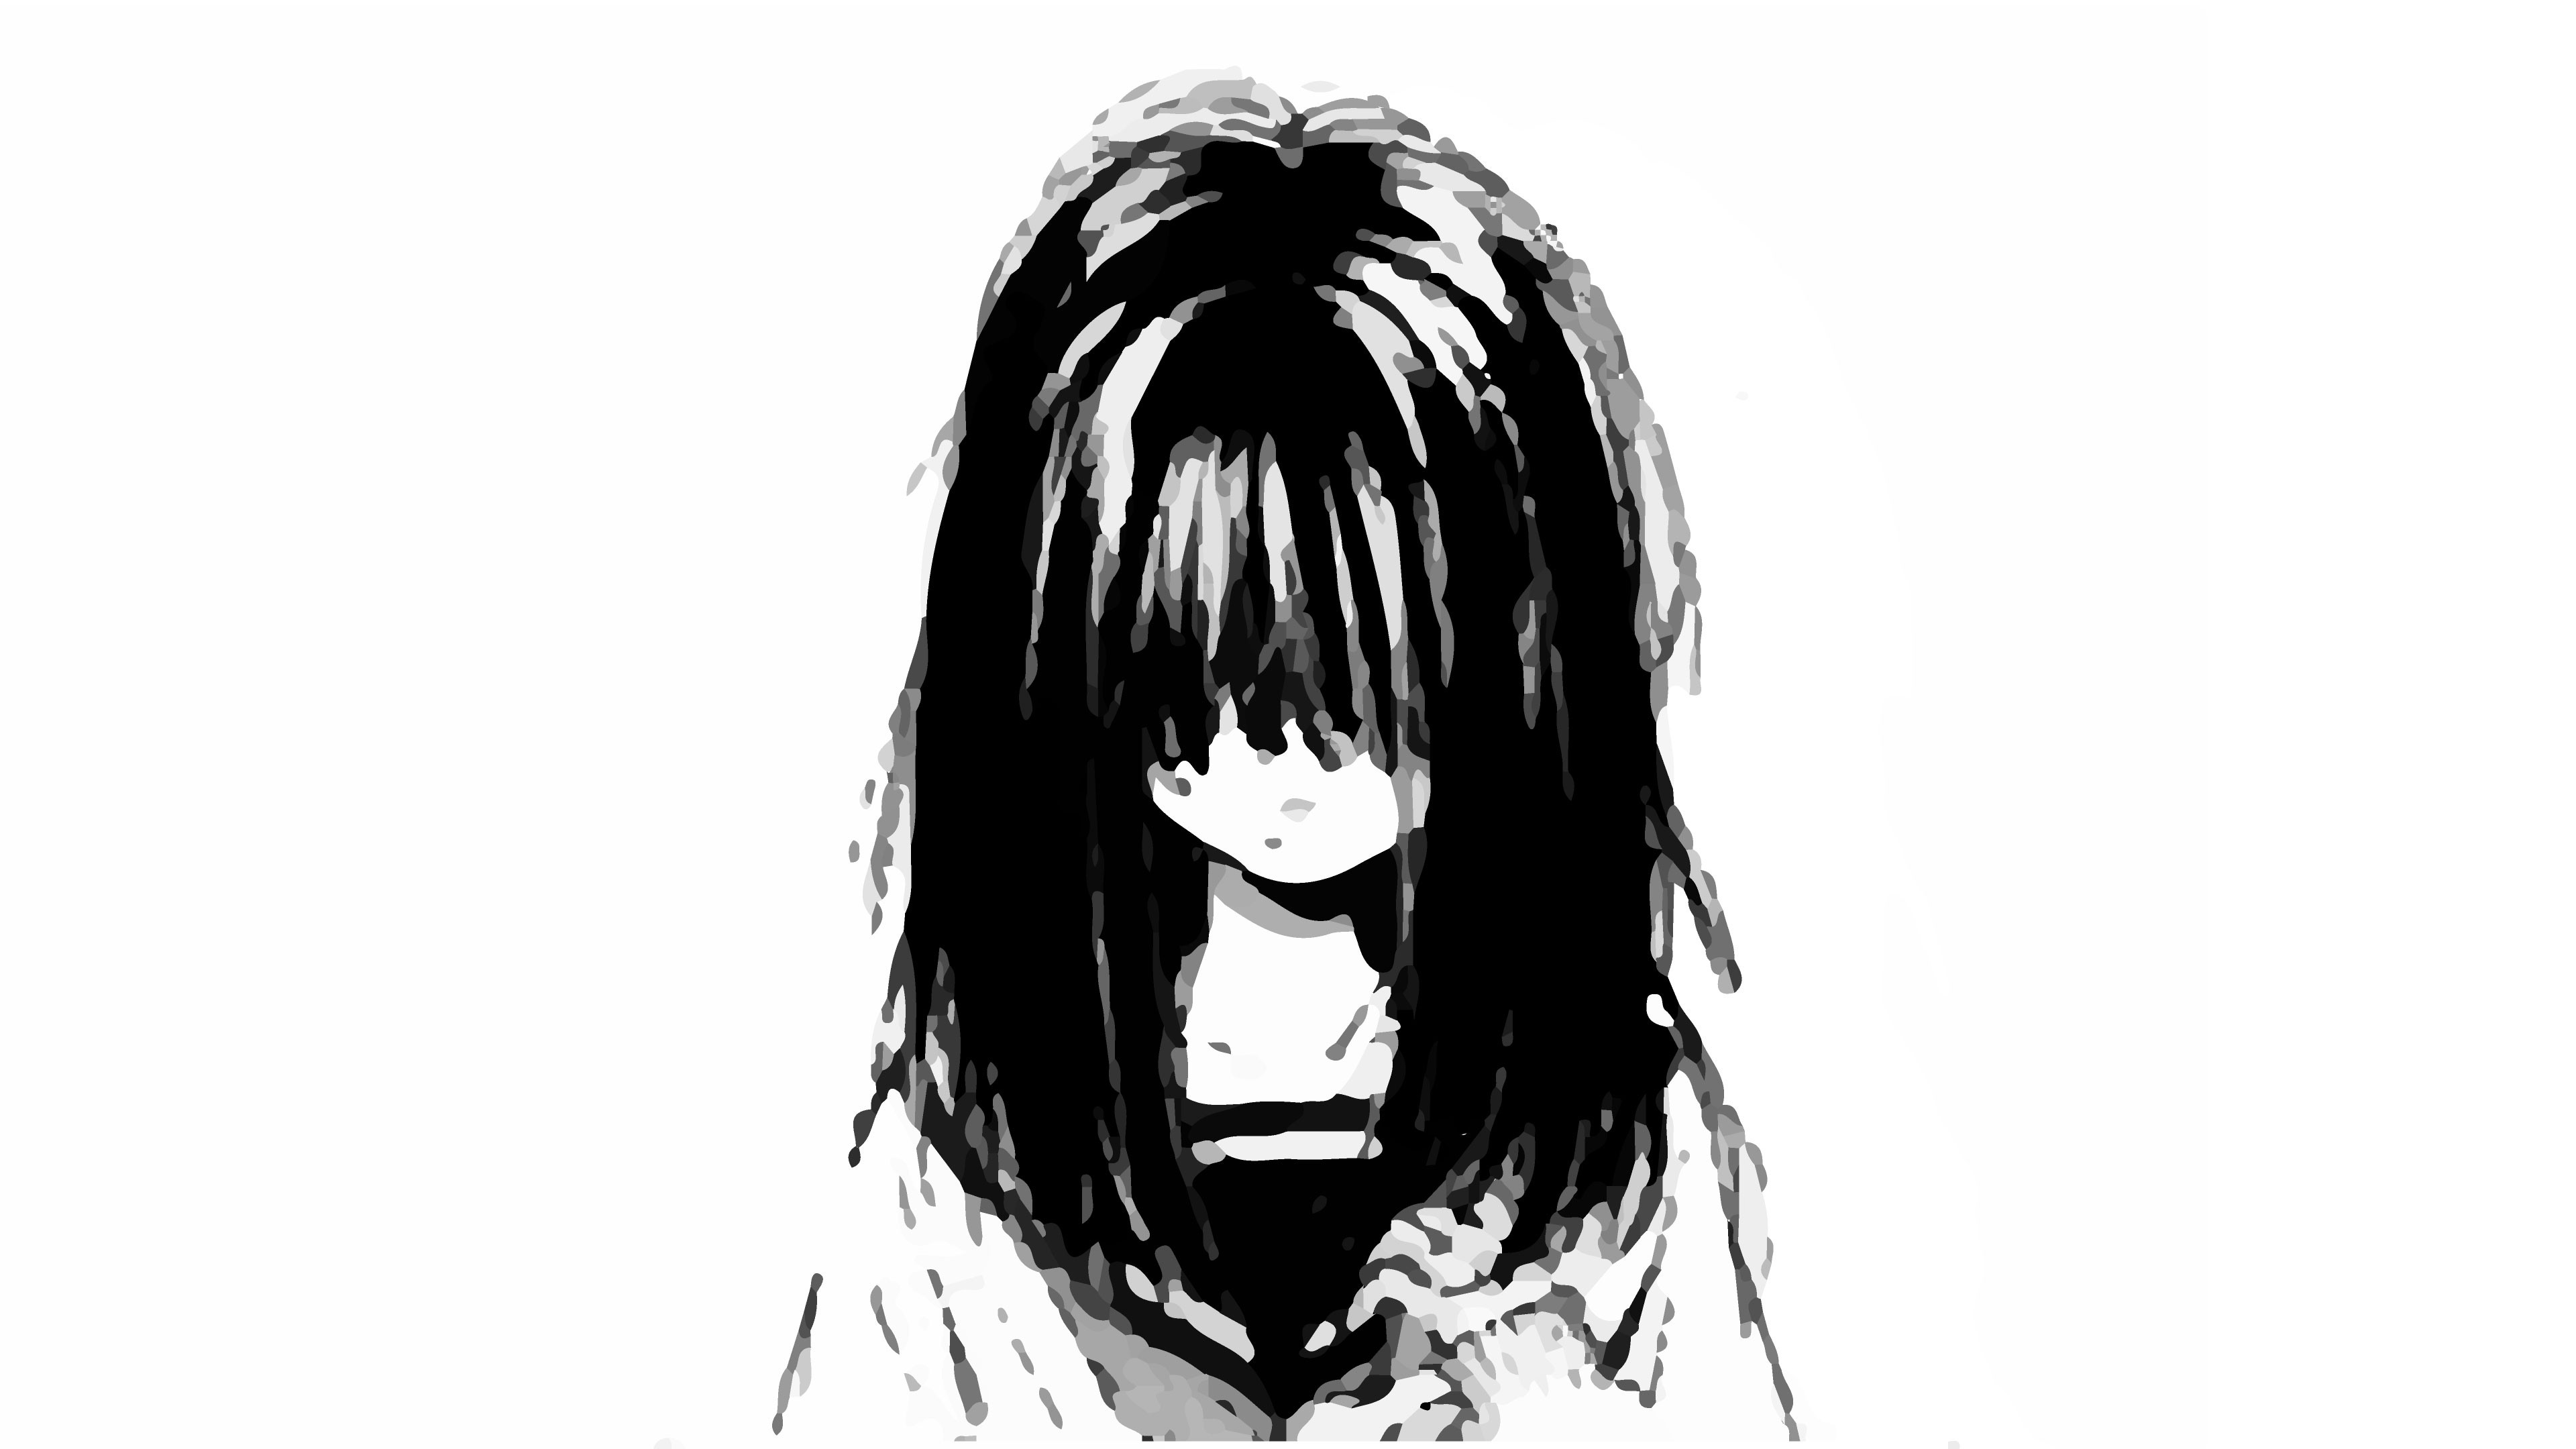 Res: 3840x2160, Black Wallpaper In Drawing Alone Girl Depressed Sad Anime Girl Crying  Drawing And Pictures | Sadever